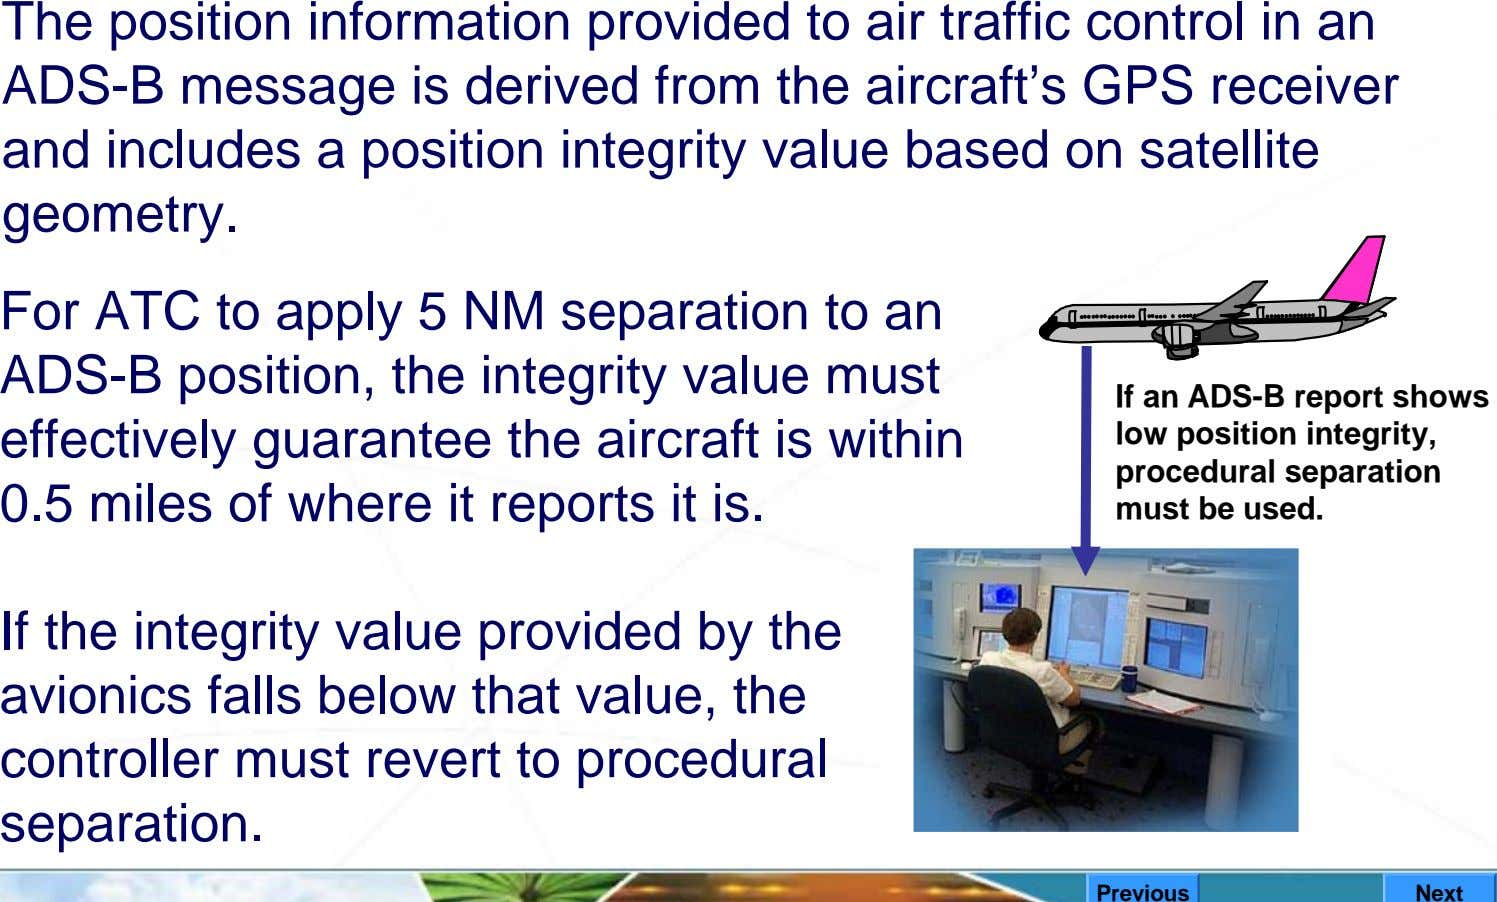 The position information provided to air traffic control in an ADS-B message is derived from